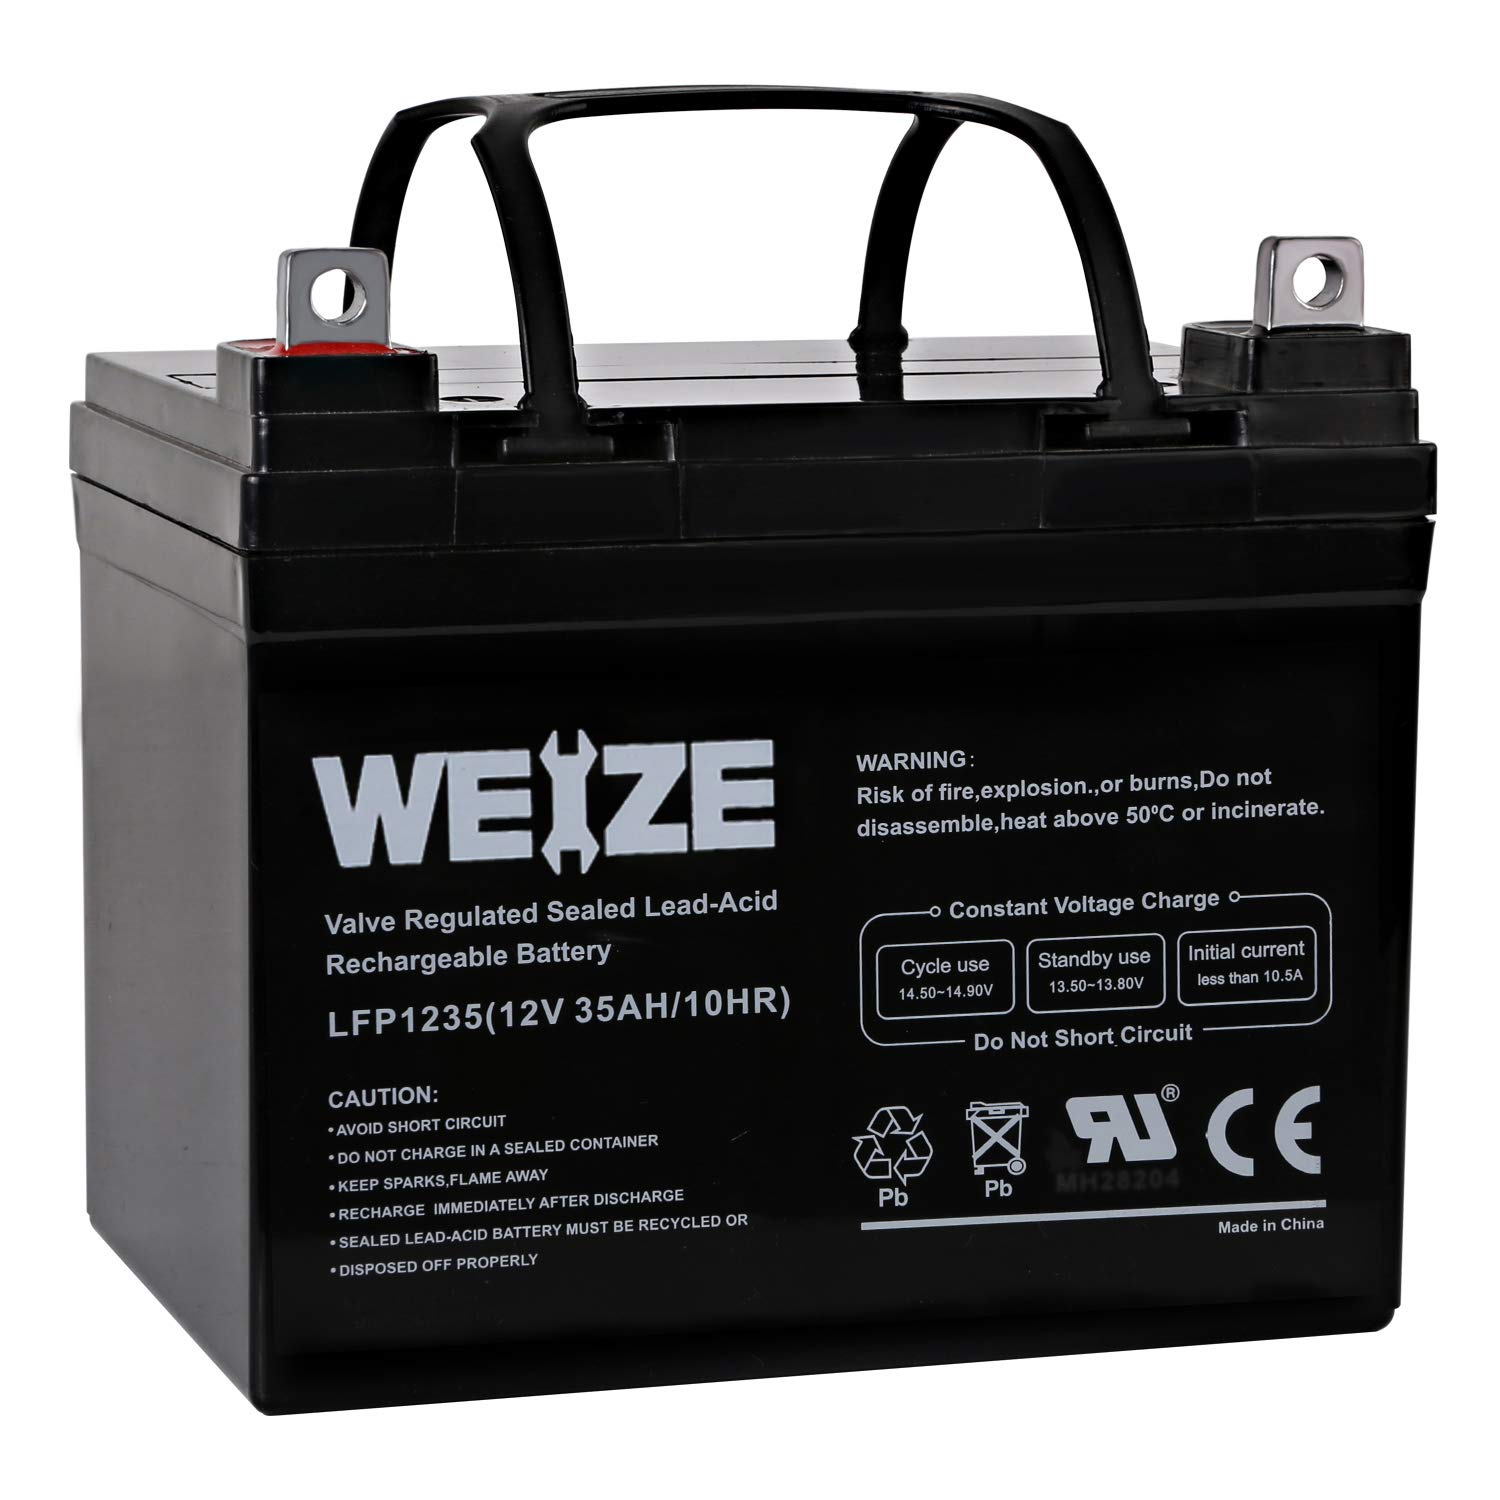 Weize Rechargeable Cycle Battery Replaces